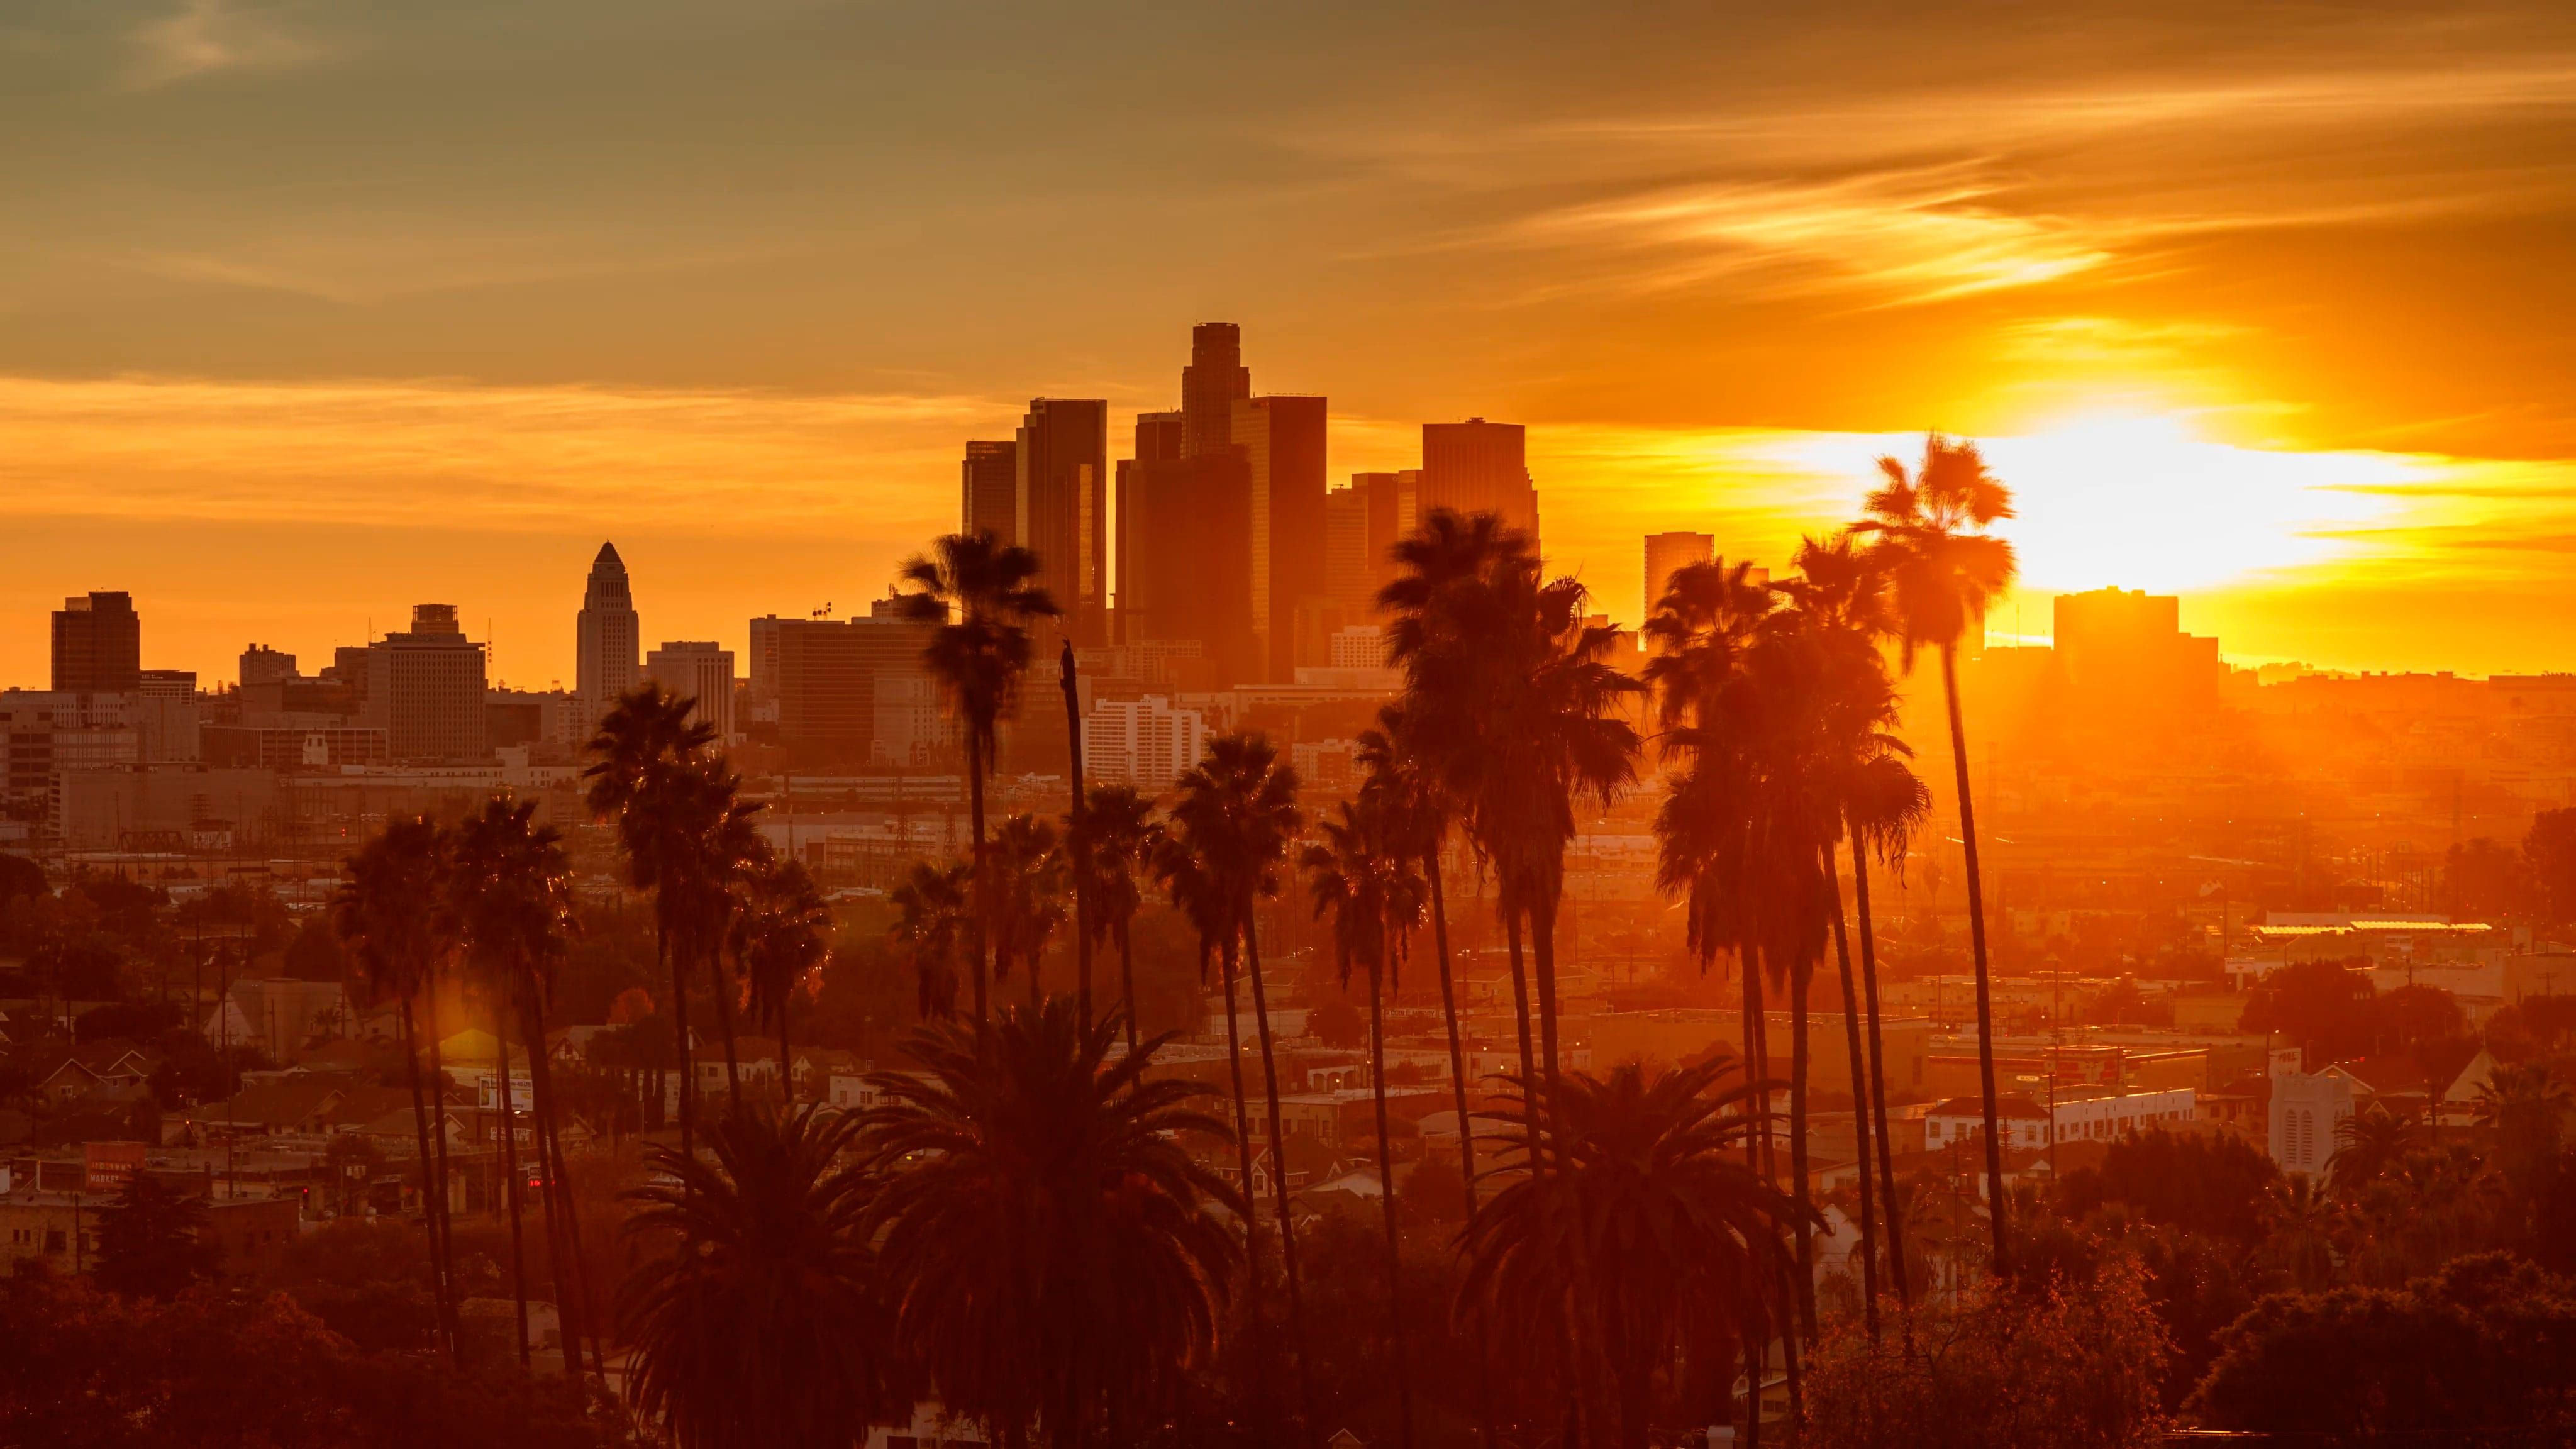 The Most Beautiful Sunset in Los Angeles, California